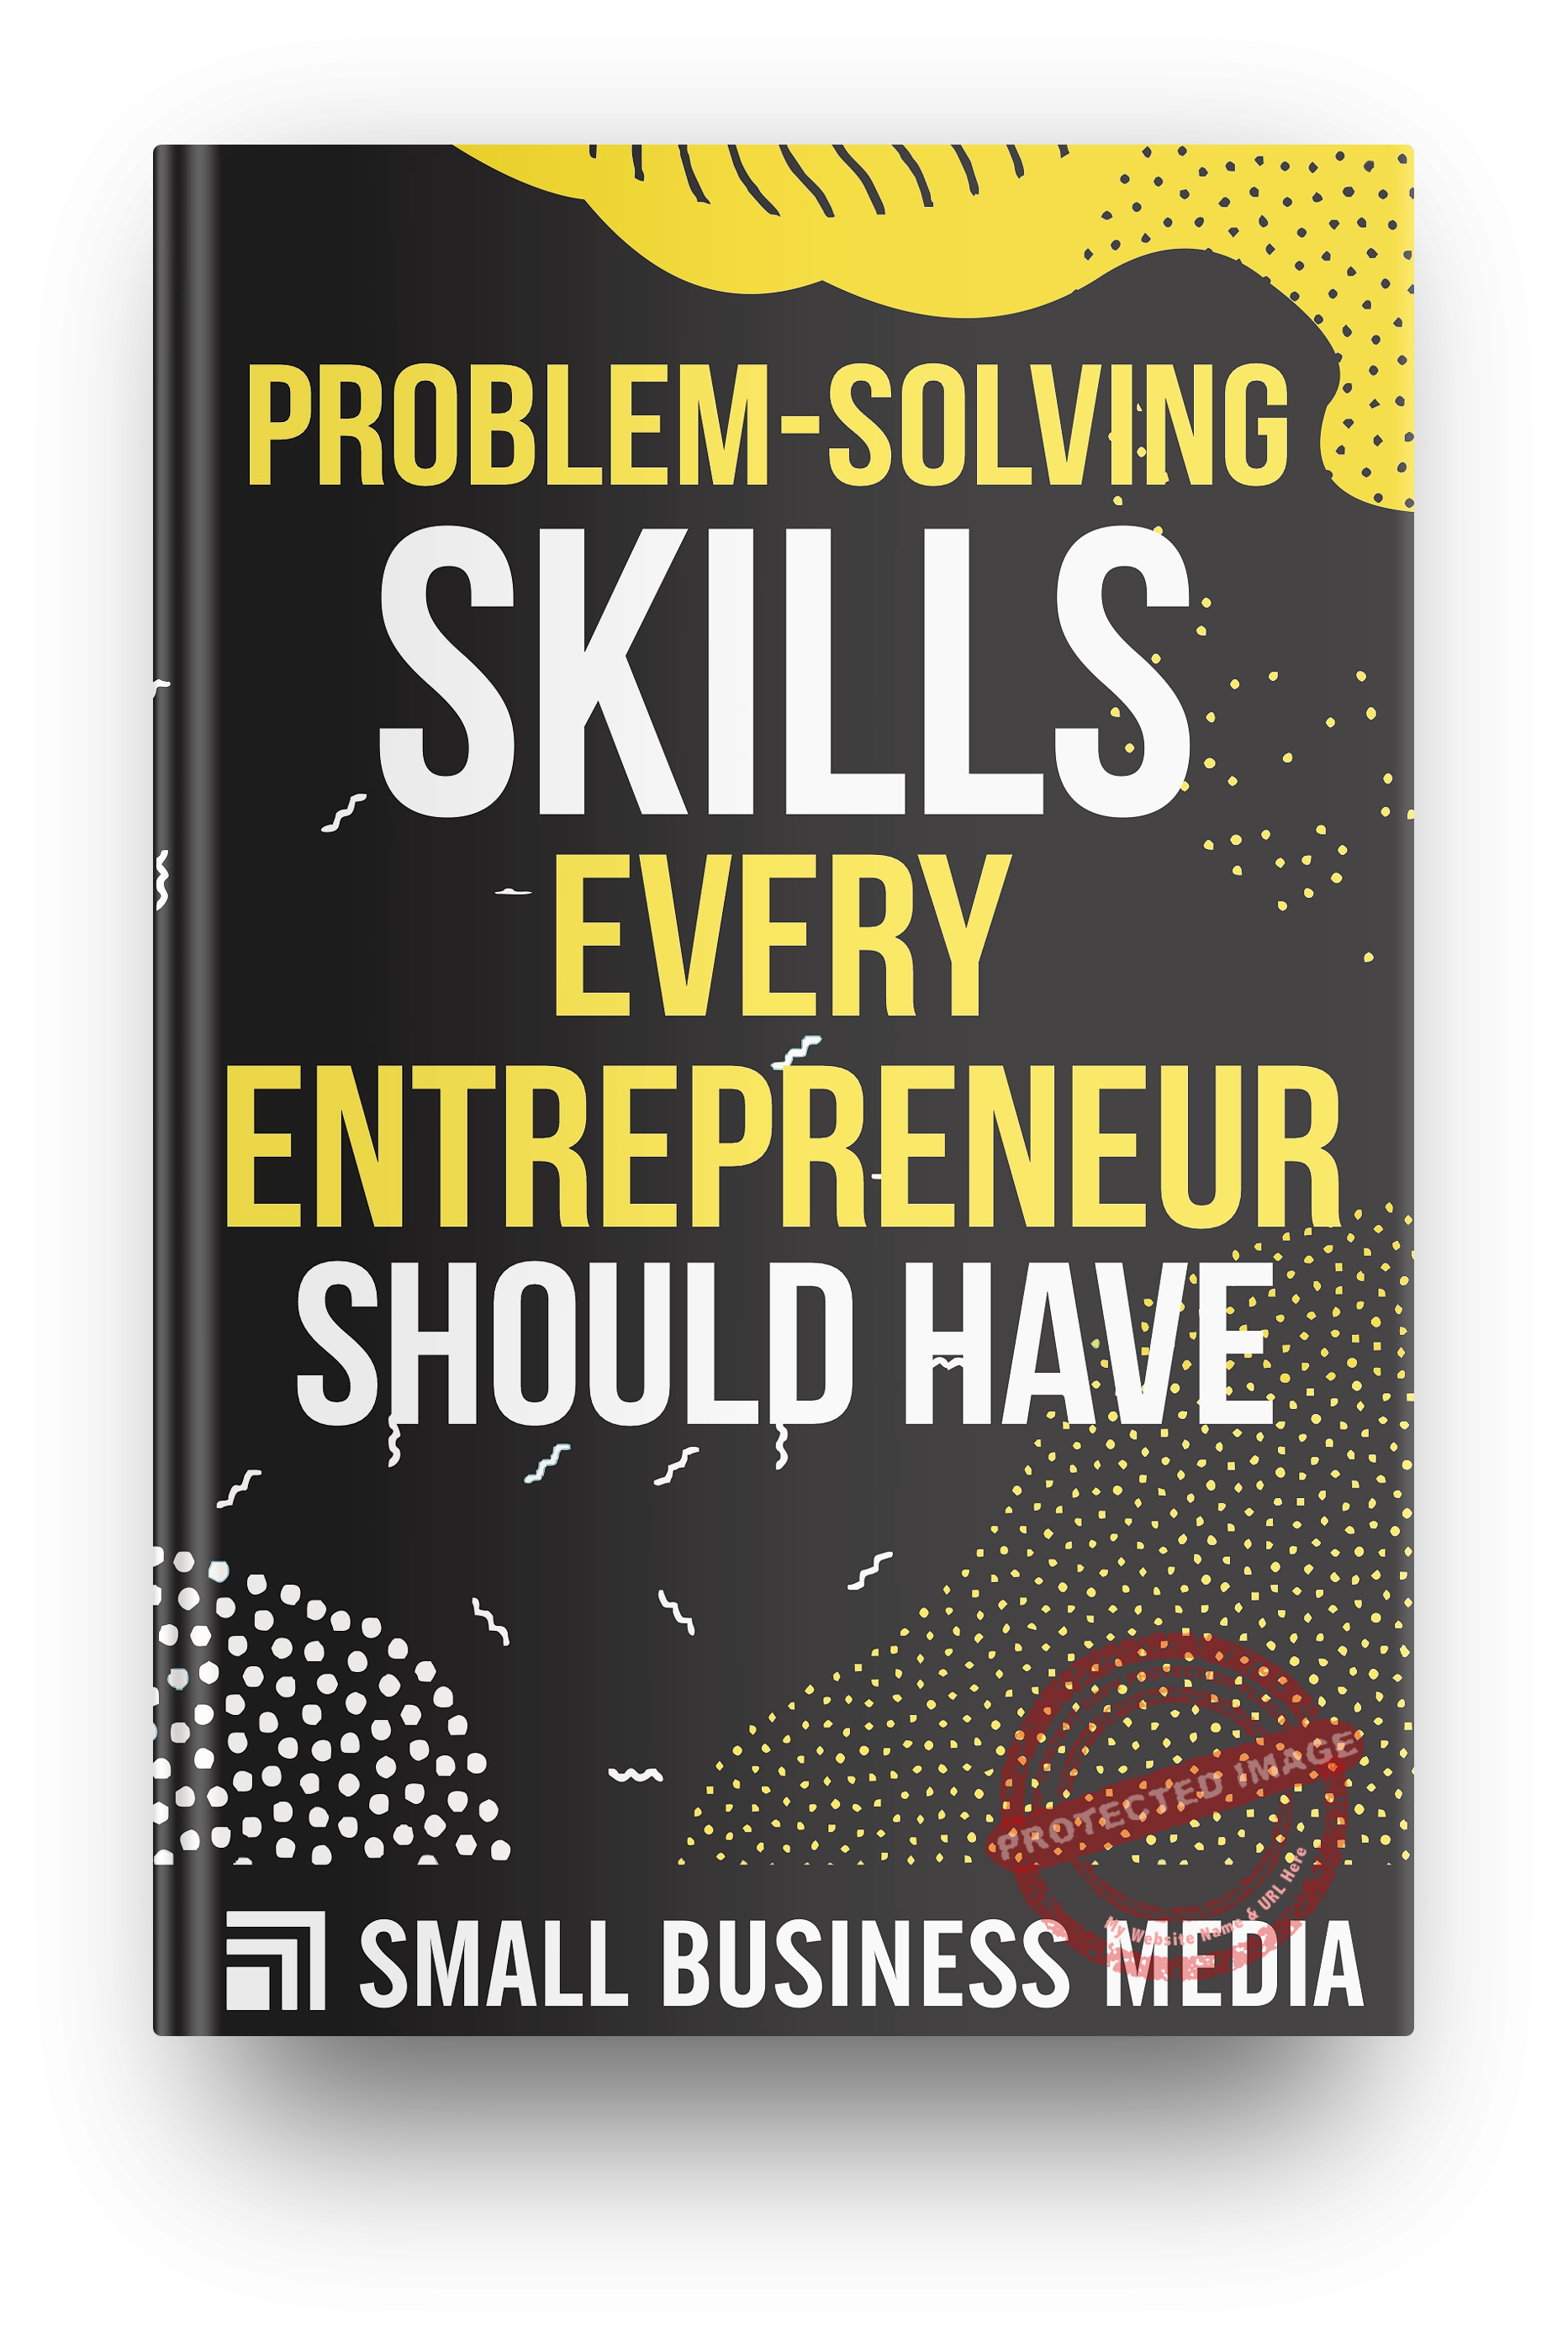 Problem-Solving Skills Every Entrepreneur Should Have